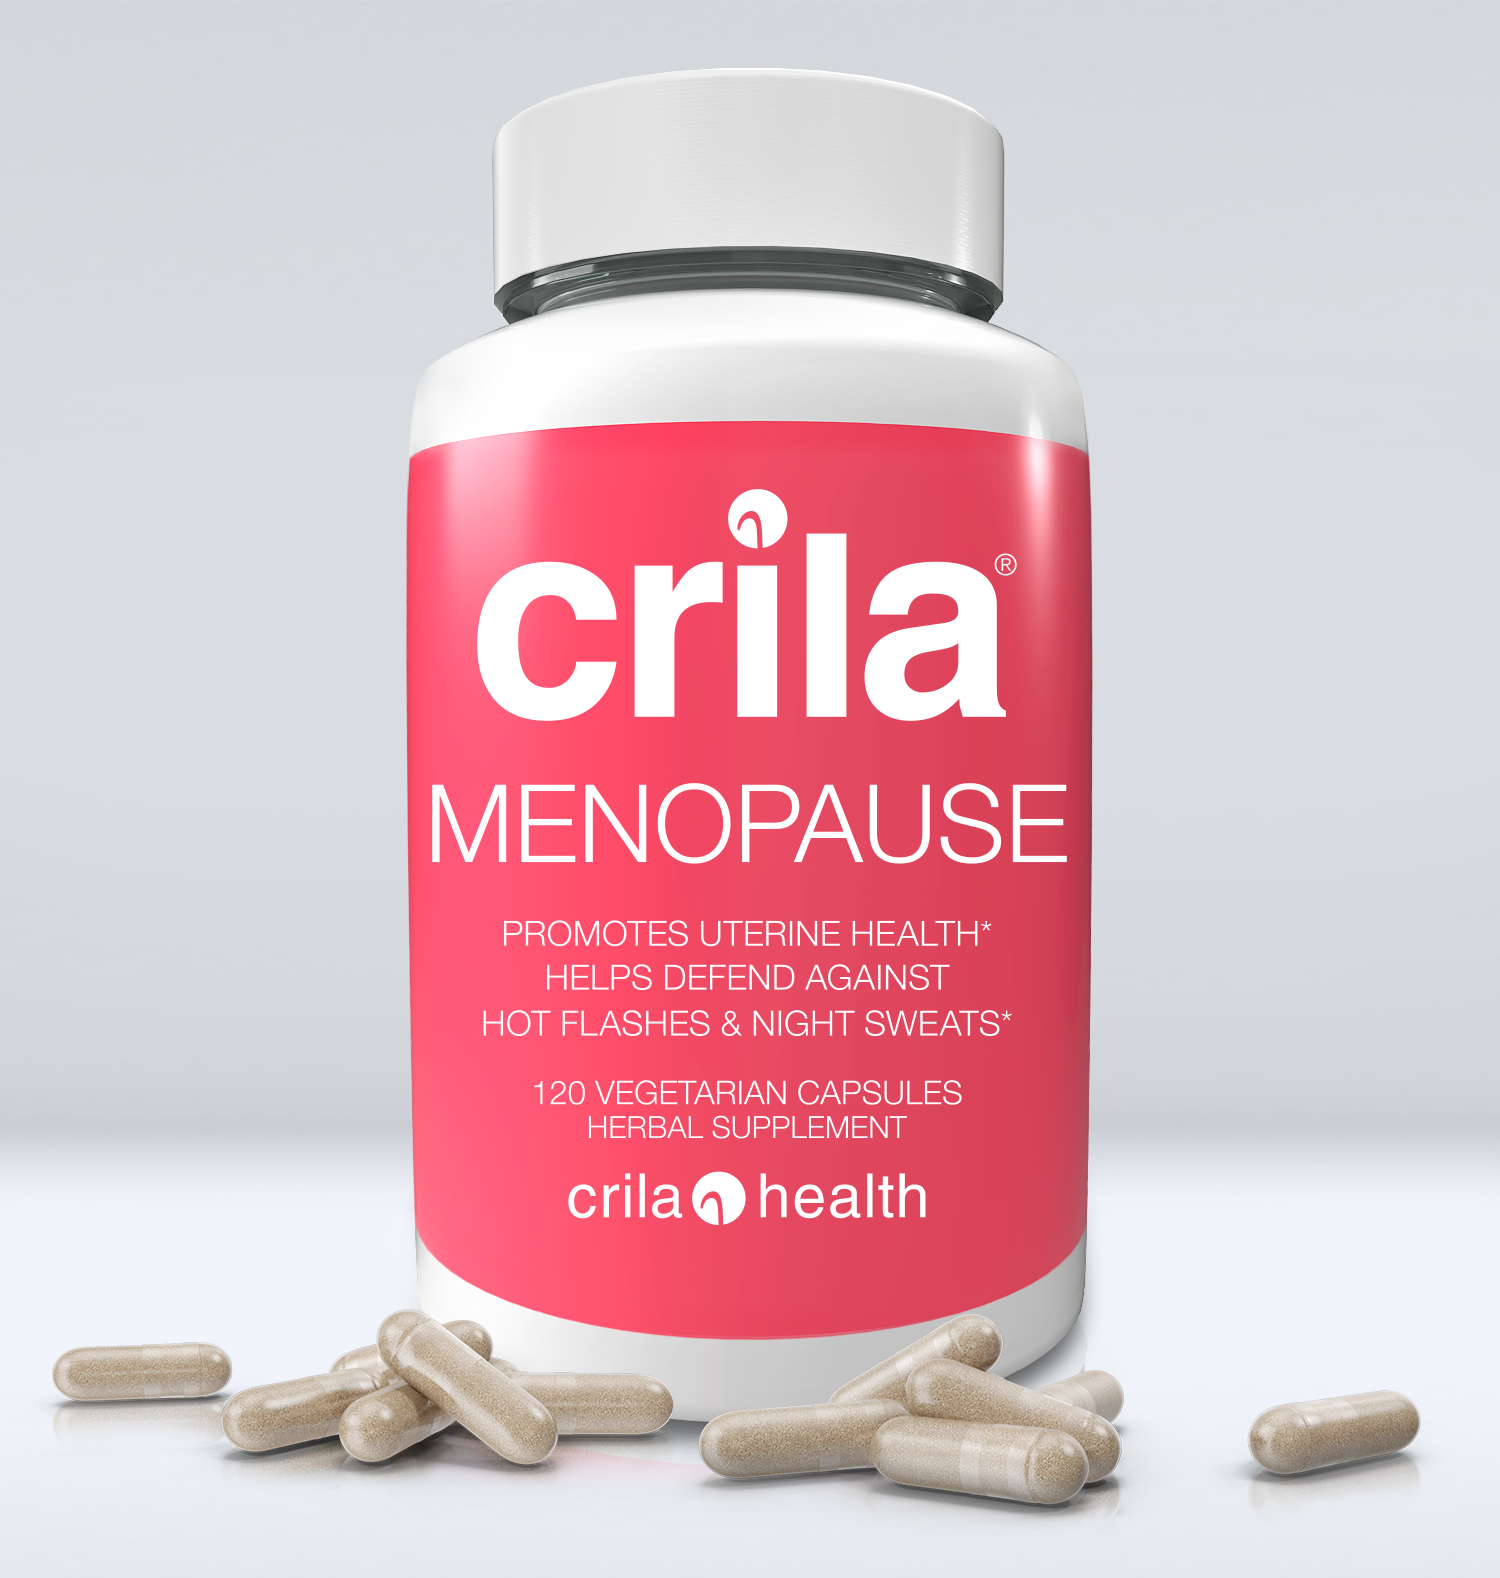 Crila® for Menopause Health